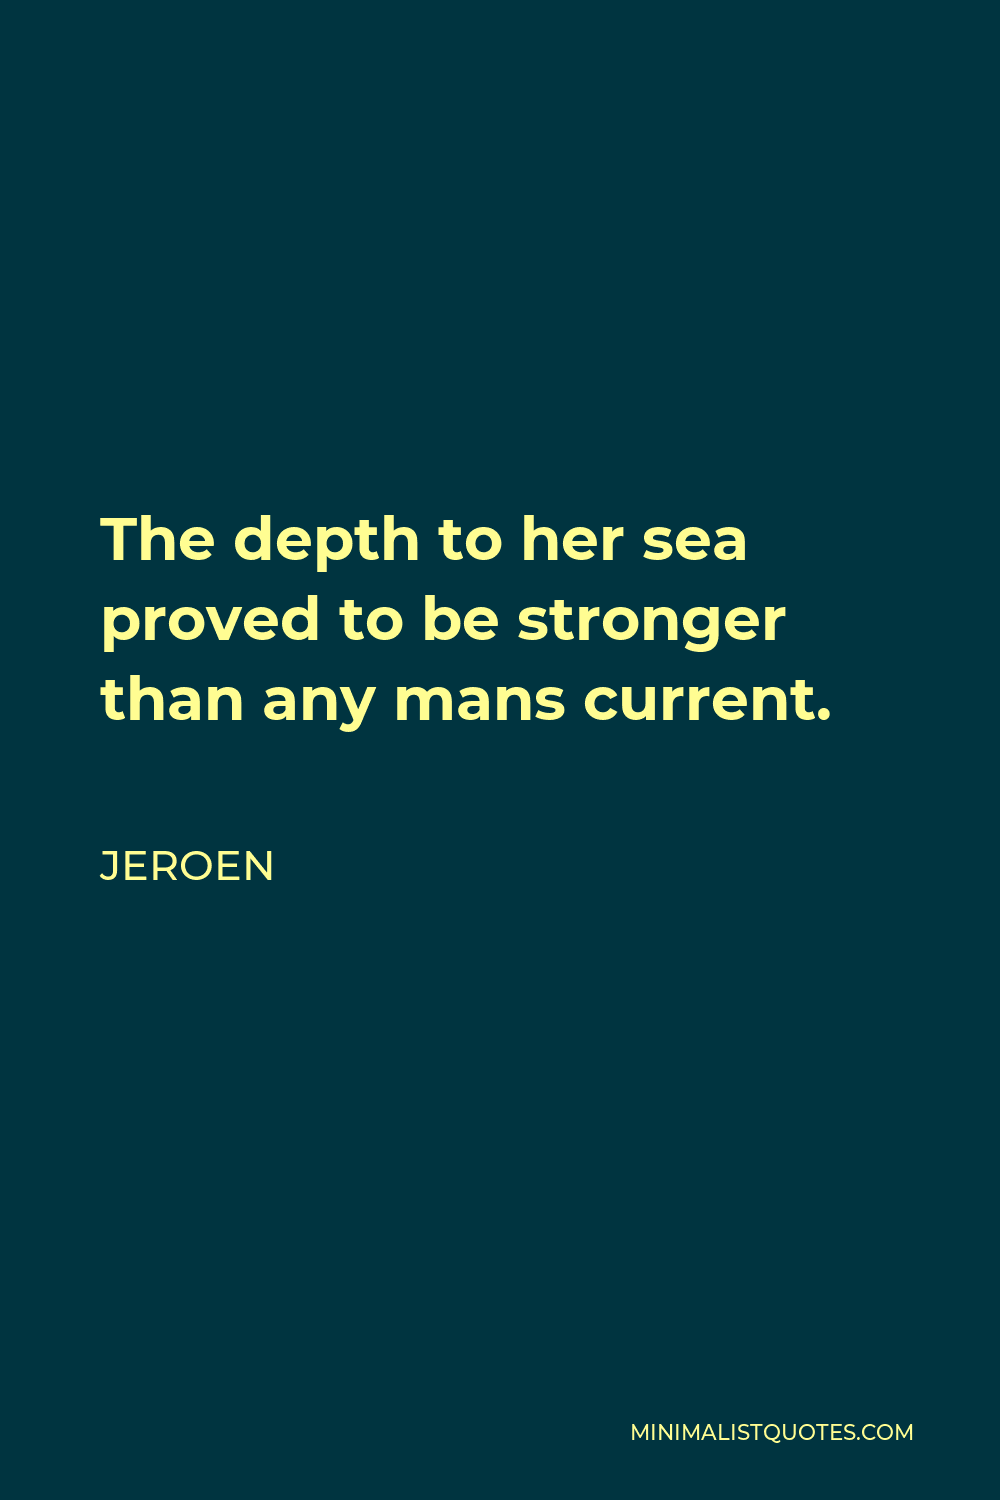 Jeroen Quote - The depth to her sea proved to be stronger than any mans current.